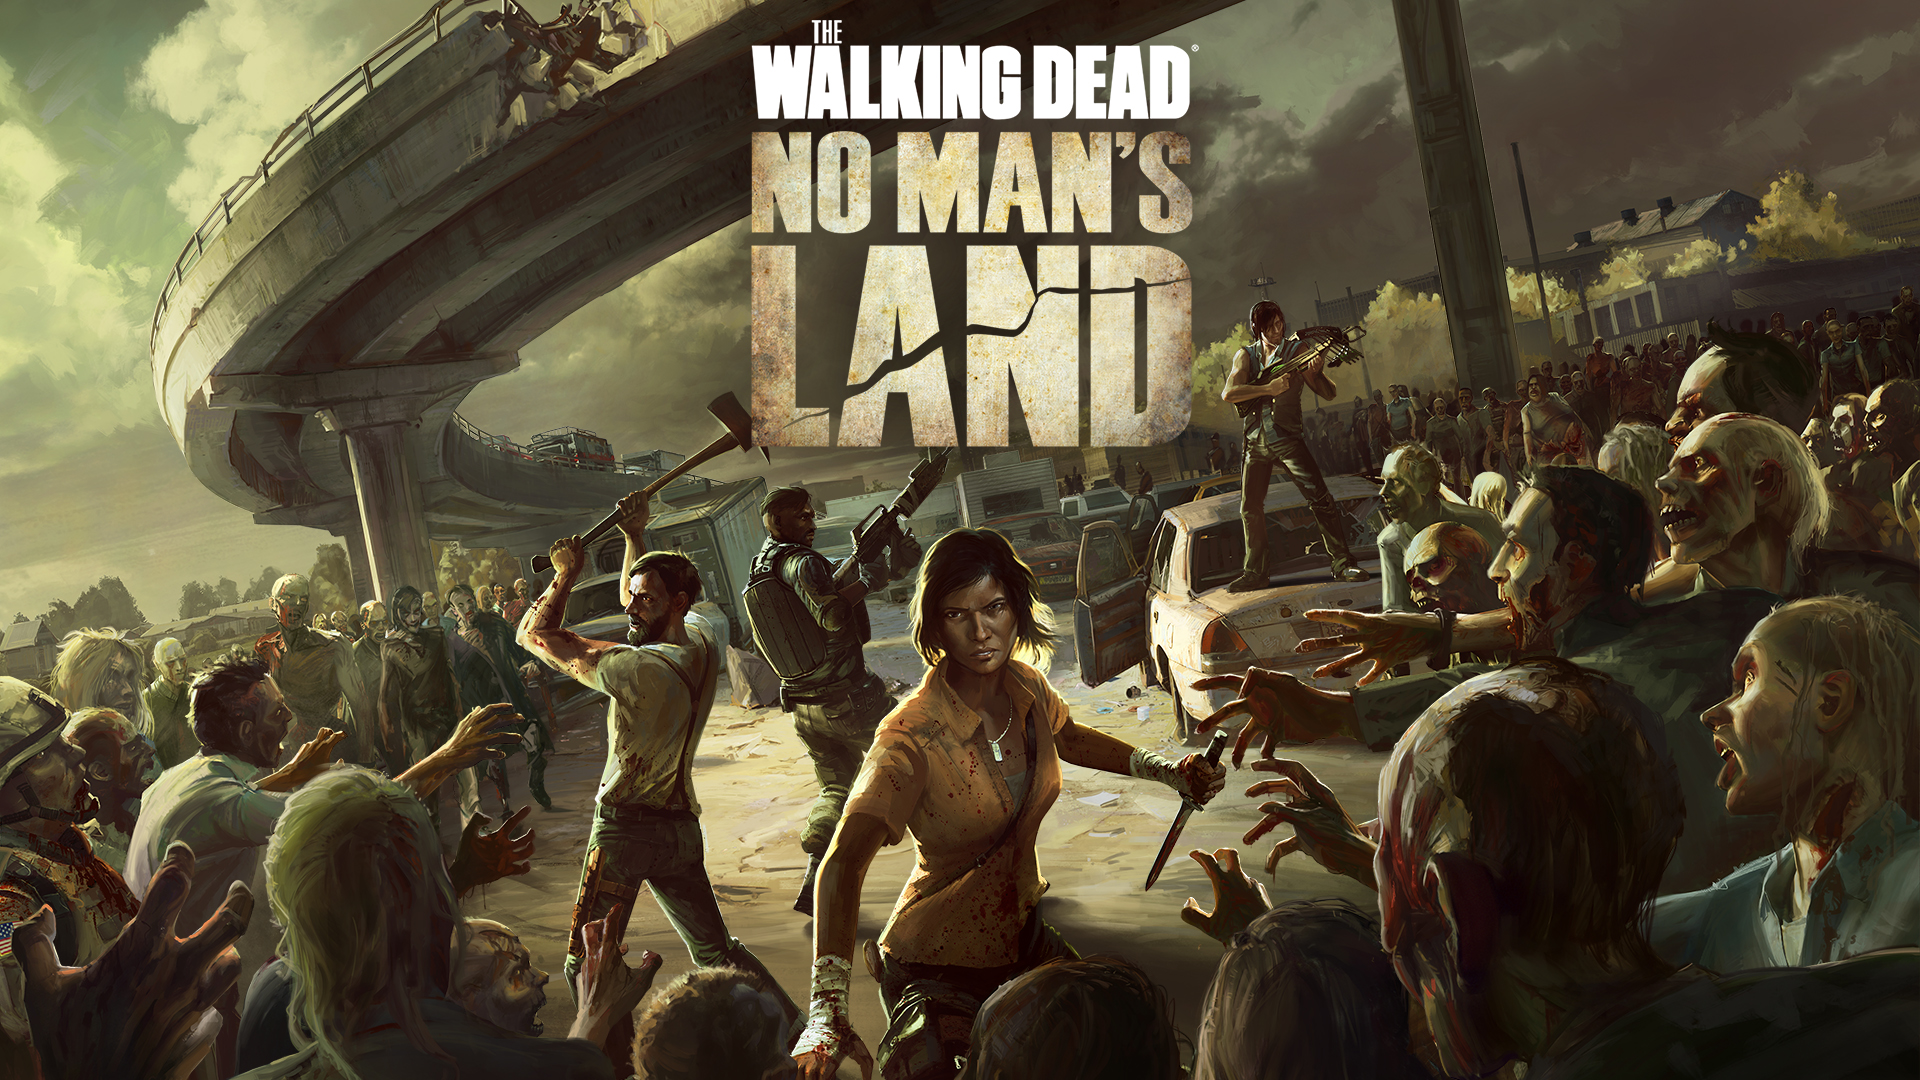 The Walking Dead No Mans Land Video Game 2015 Photo